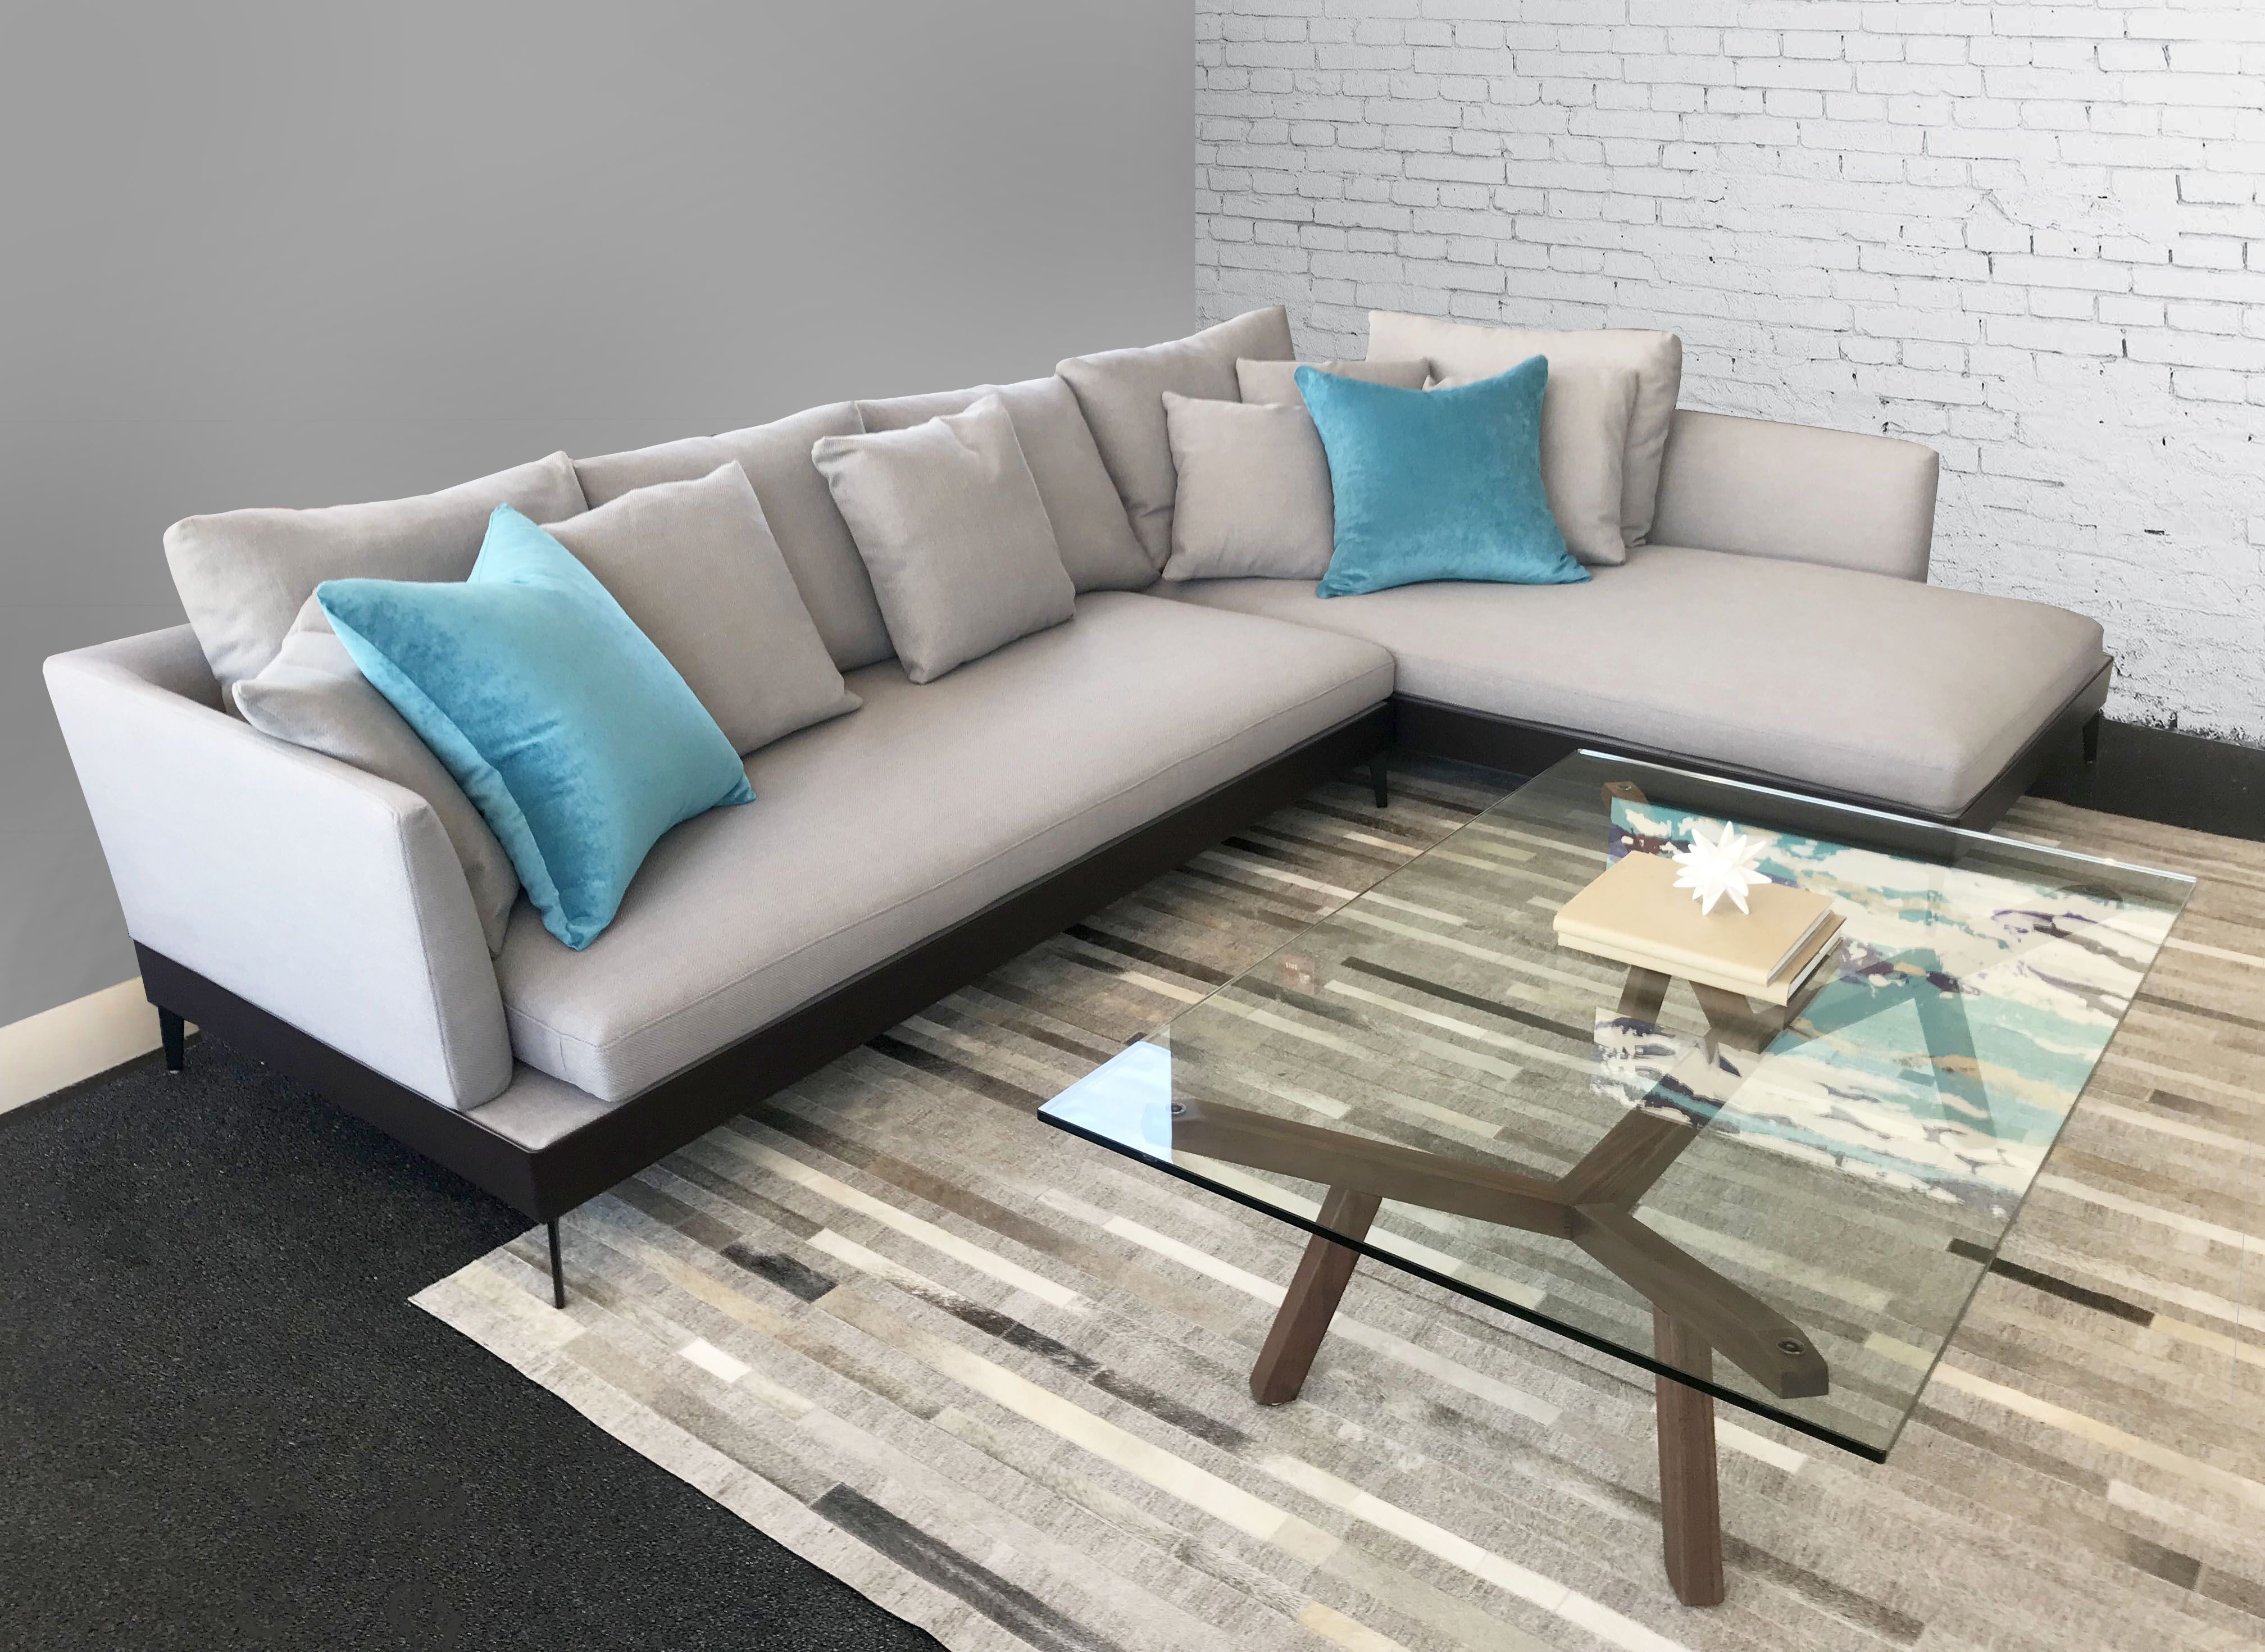 Modern vides , sleek design , vivid  accents ...Our Slate Sectional is ready to be viewed in any of our stores. Featured in light greys + beiges ; It can be customized to the dimensions and upholstery of your preference ;it is made in steel frame , down feather cushions, removable covers and ...a lifetime warranty!!! You will be  impressed with the quality👌... after-all ...Quality in Sofas is what we are known for !!!❤️